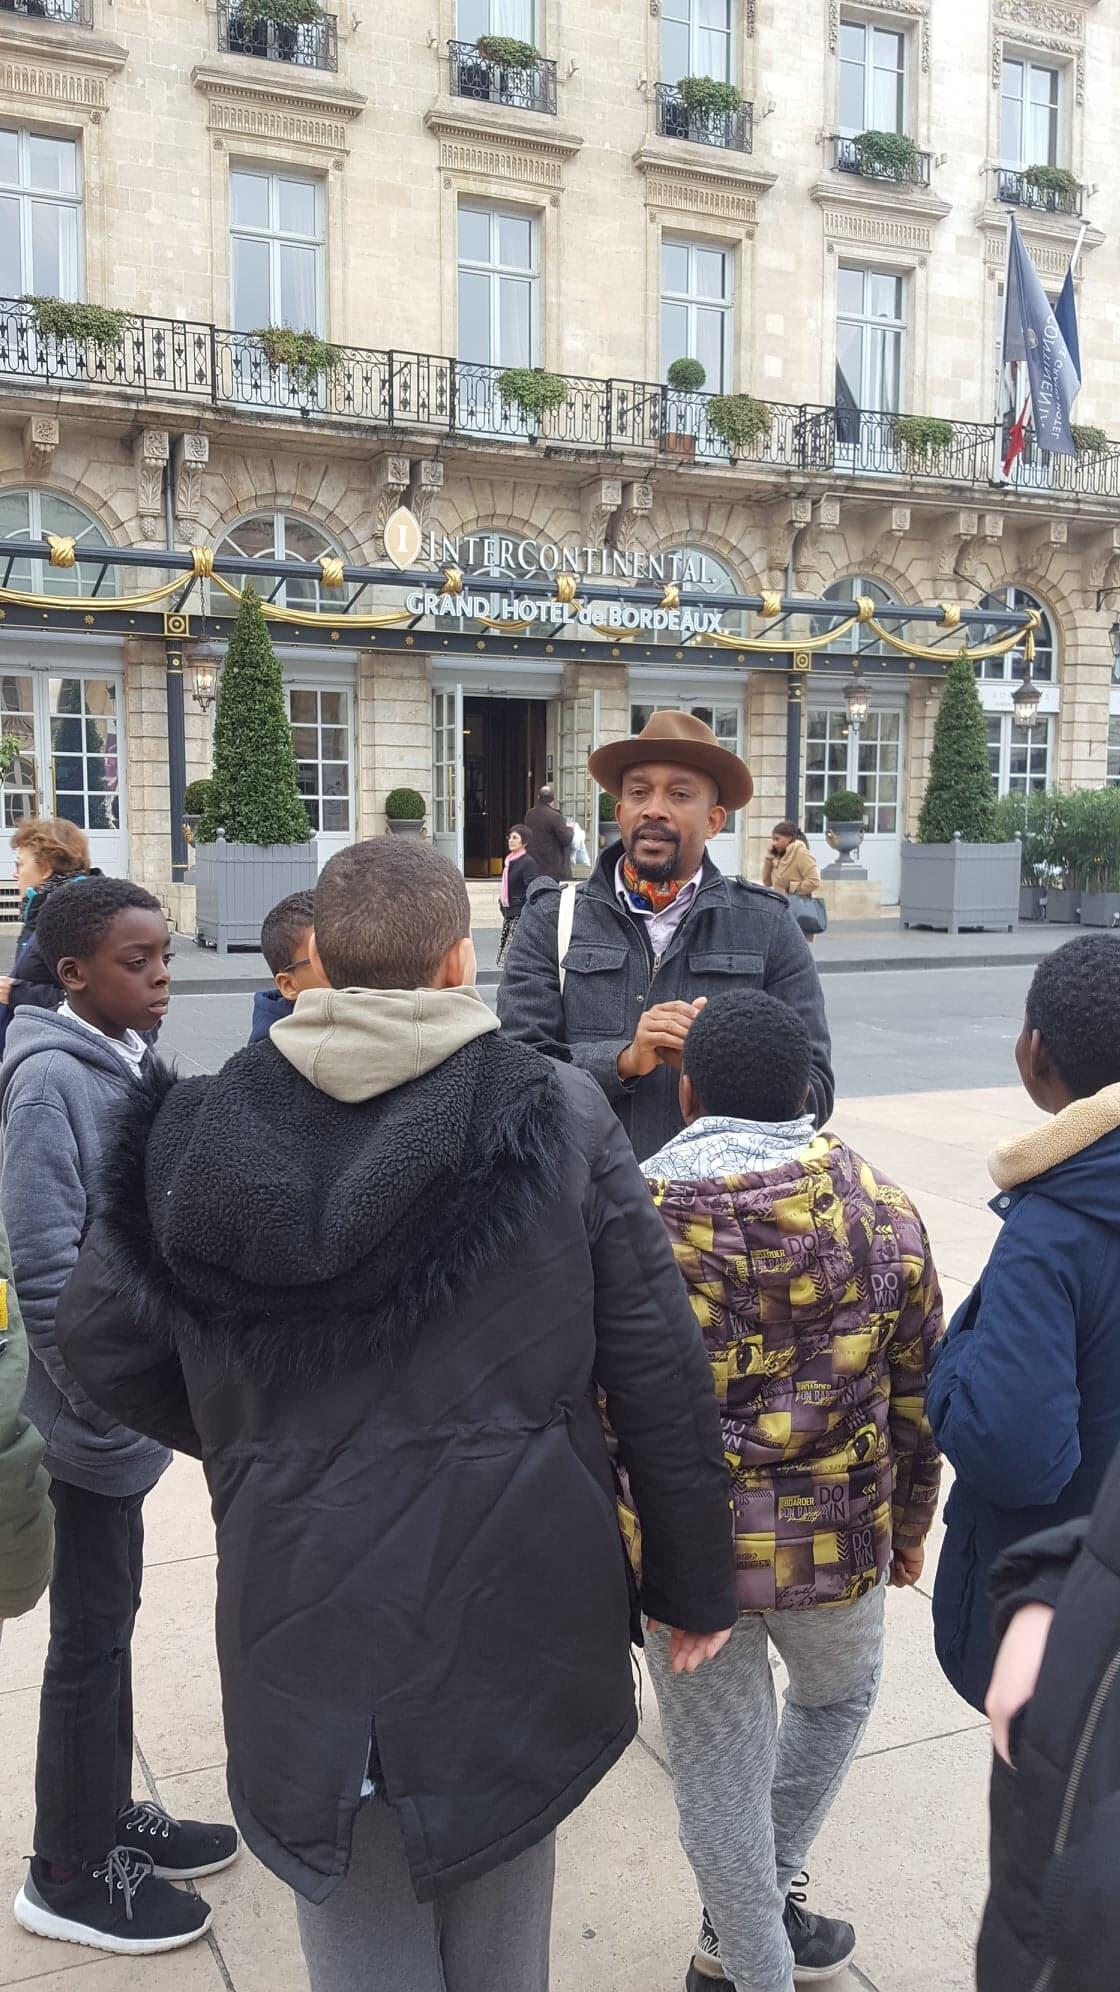 Karfa Diallo, coordinator of Black History Month leads a group of schoolchildren on a tour of Bordeaux's slavery past, 19 February, 2019